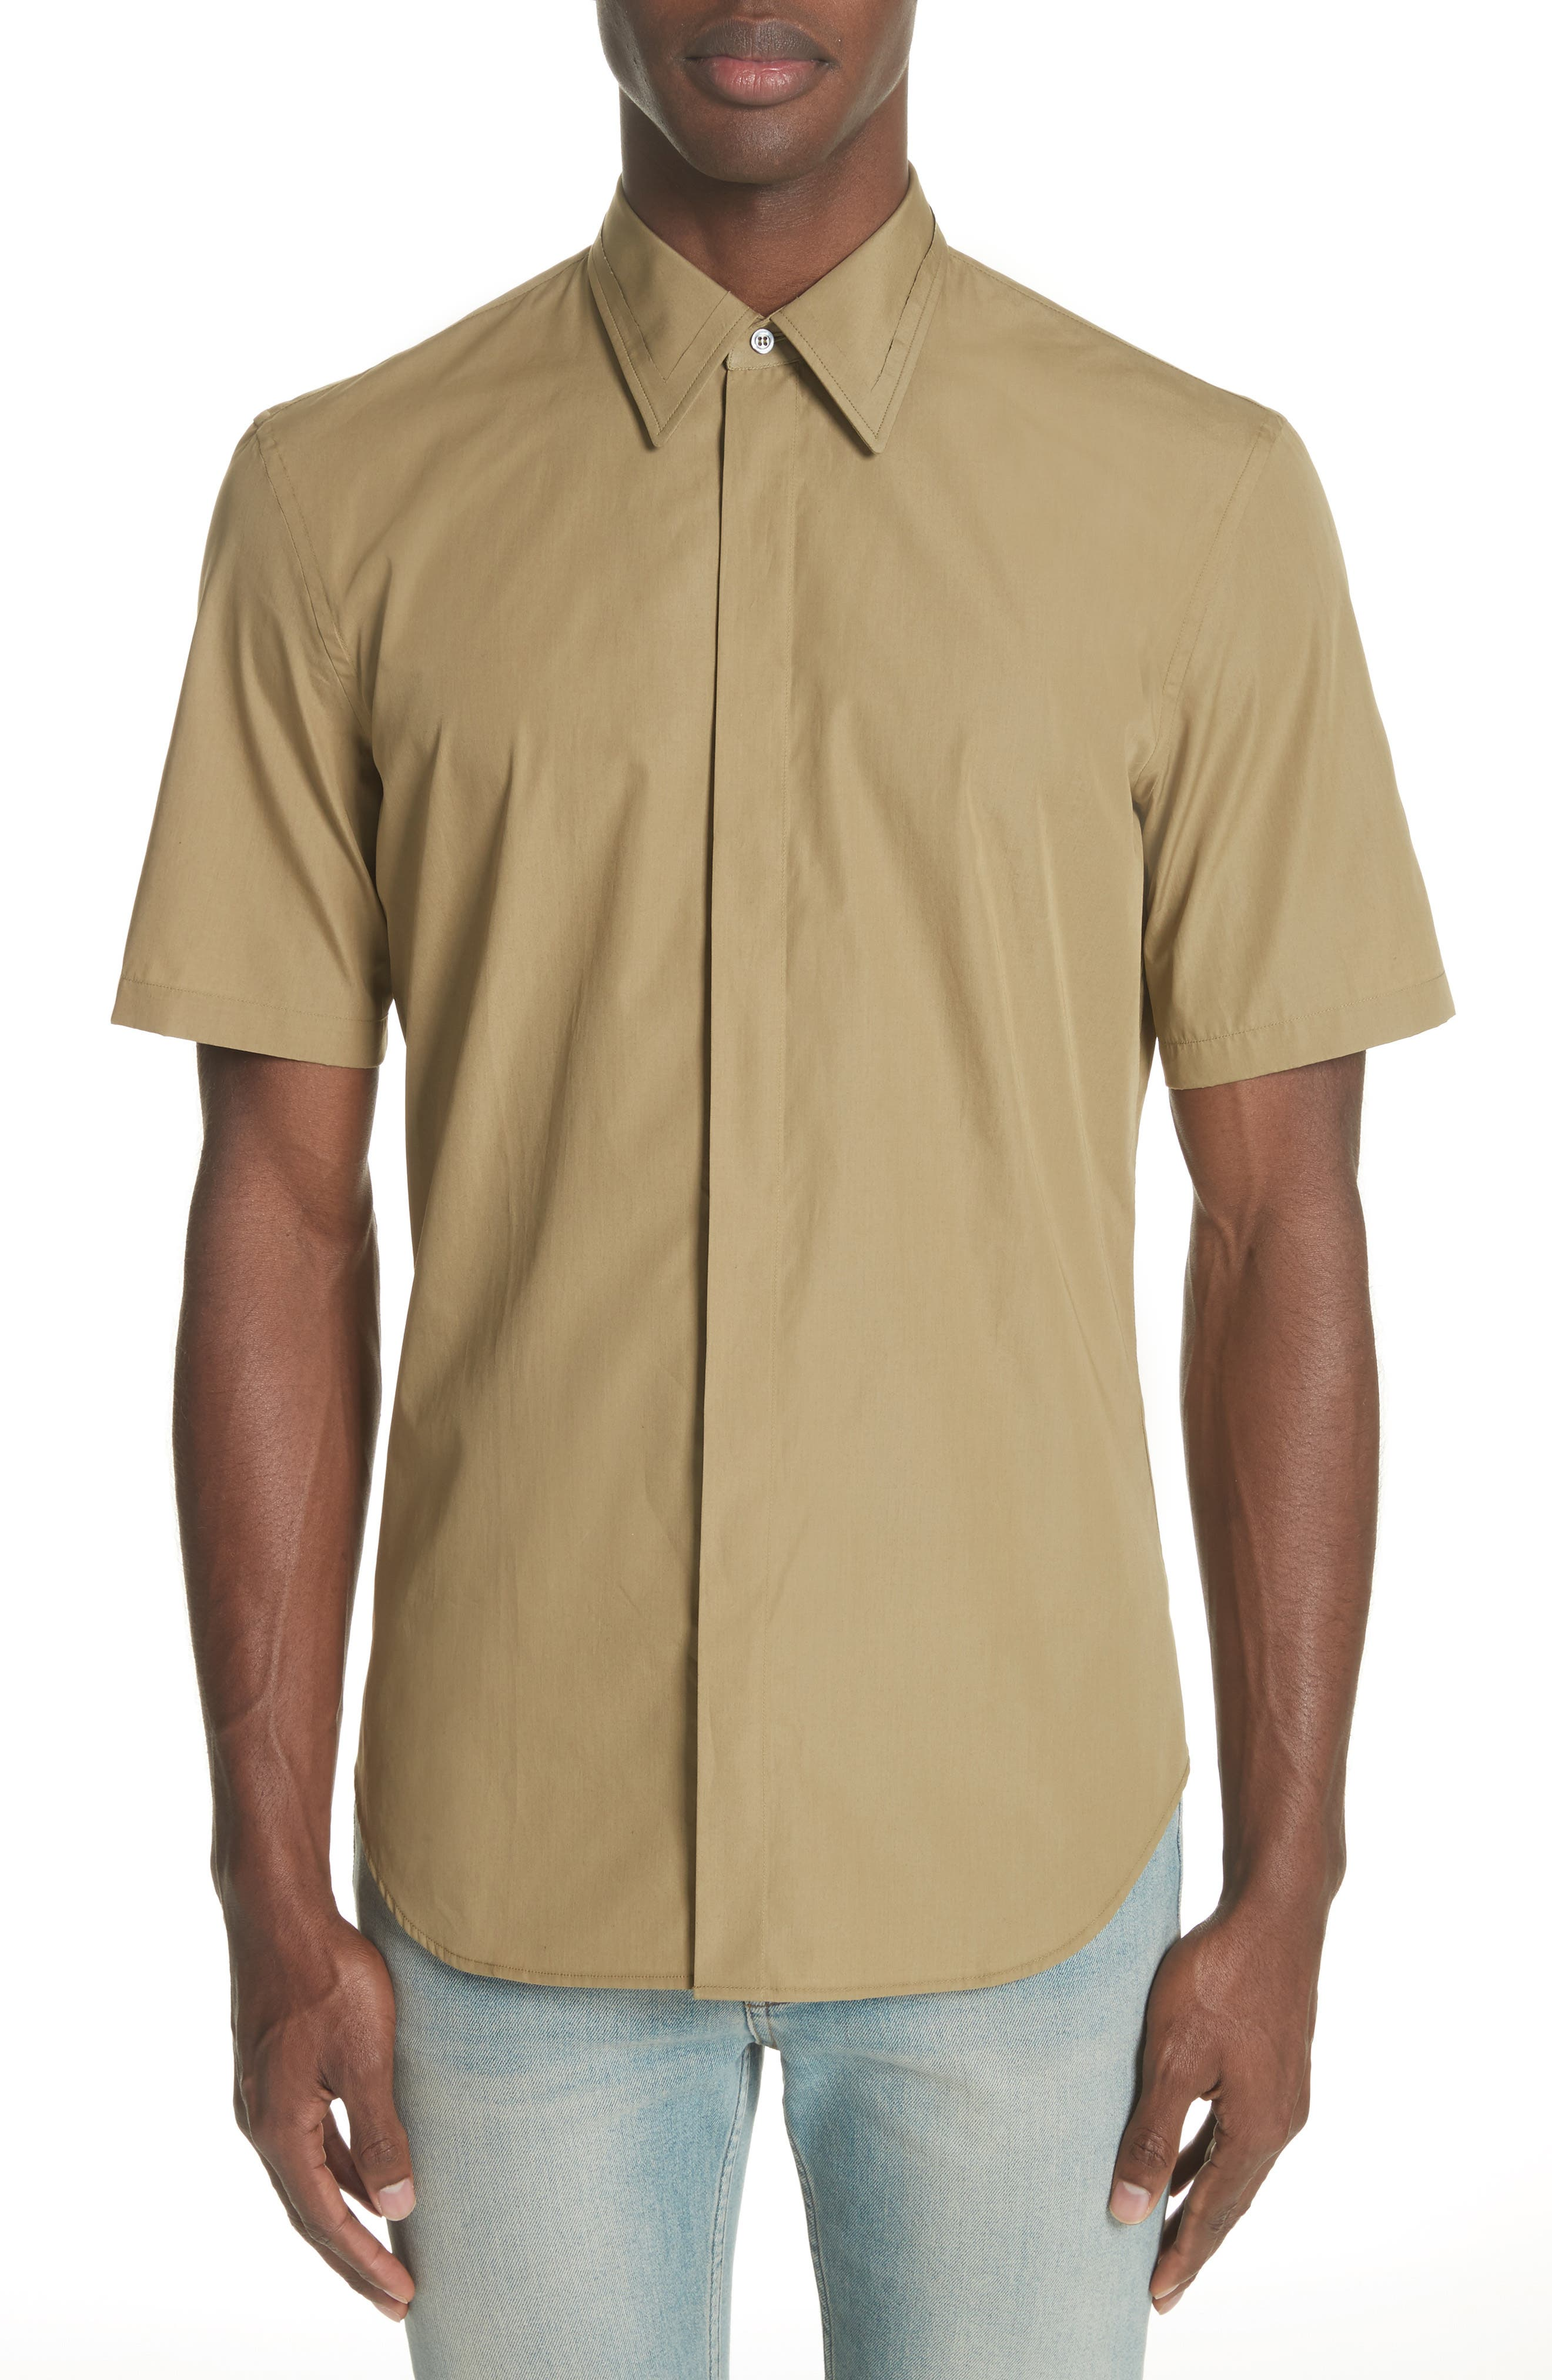 Main Image - MM6 Maison Margiela Poplin Short Sleeve Woven Shirt